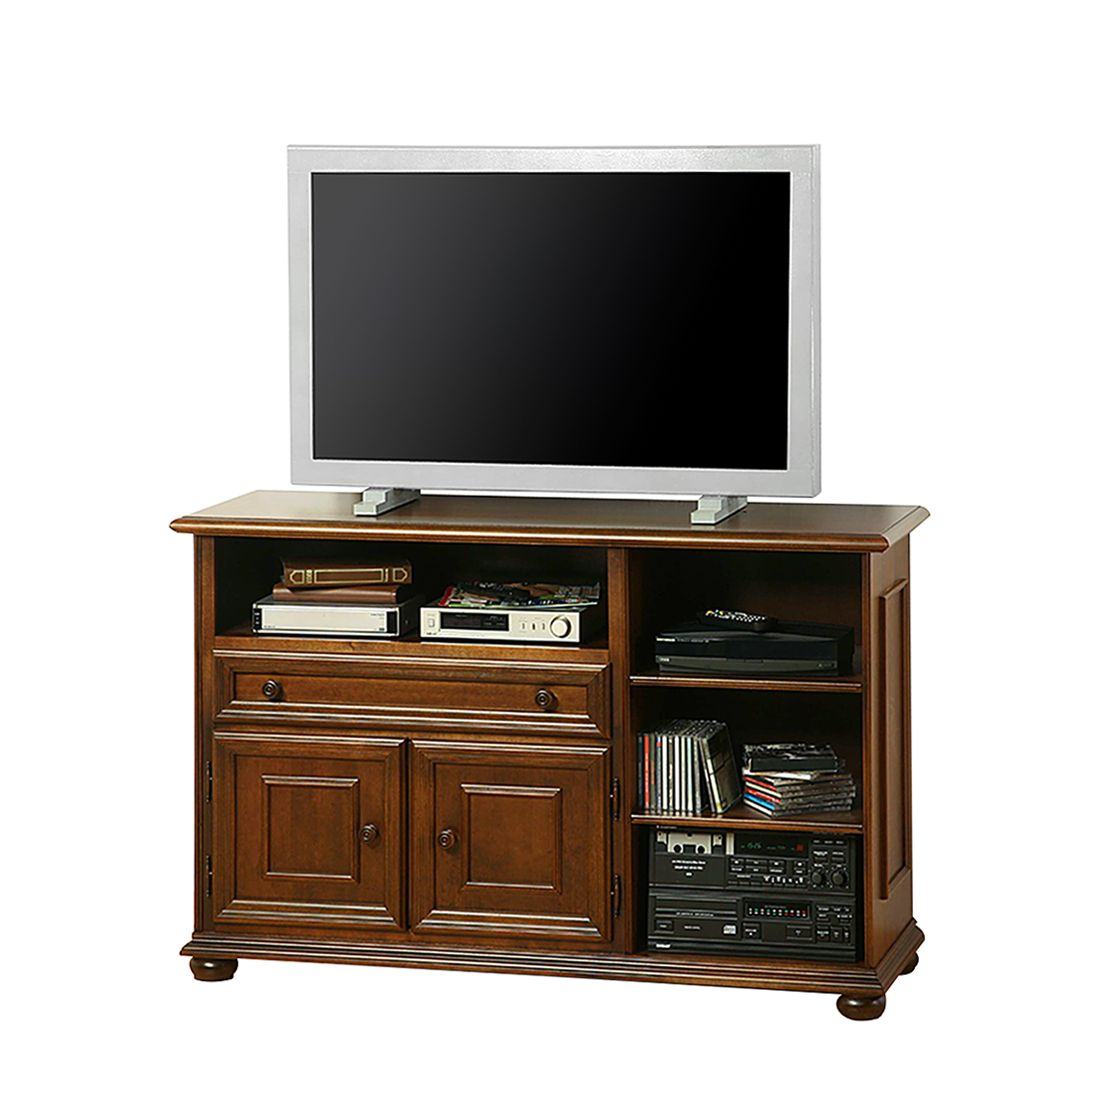 tv kommode arabella i tulpenbaum teilmassiv antik gebeizt lackiert. Black Bedroom Furniture Sets. Home Design Ideas